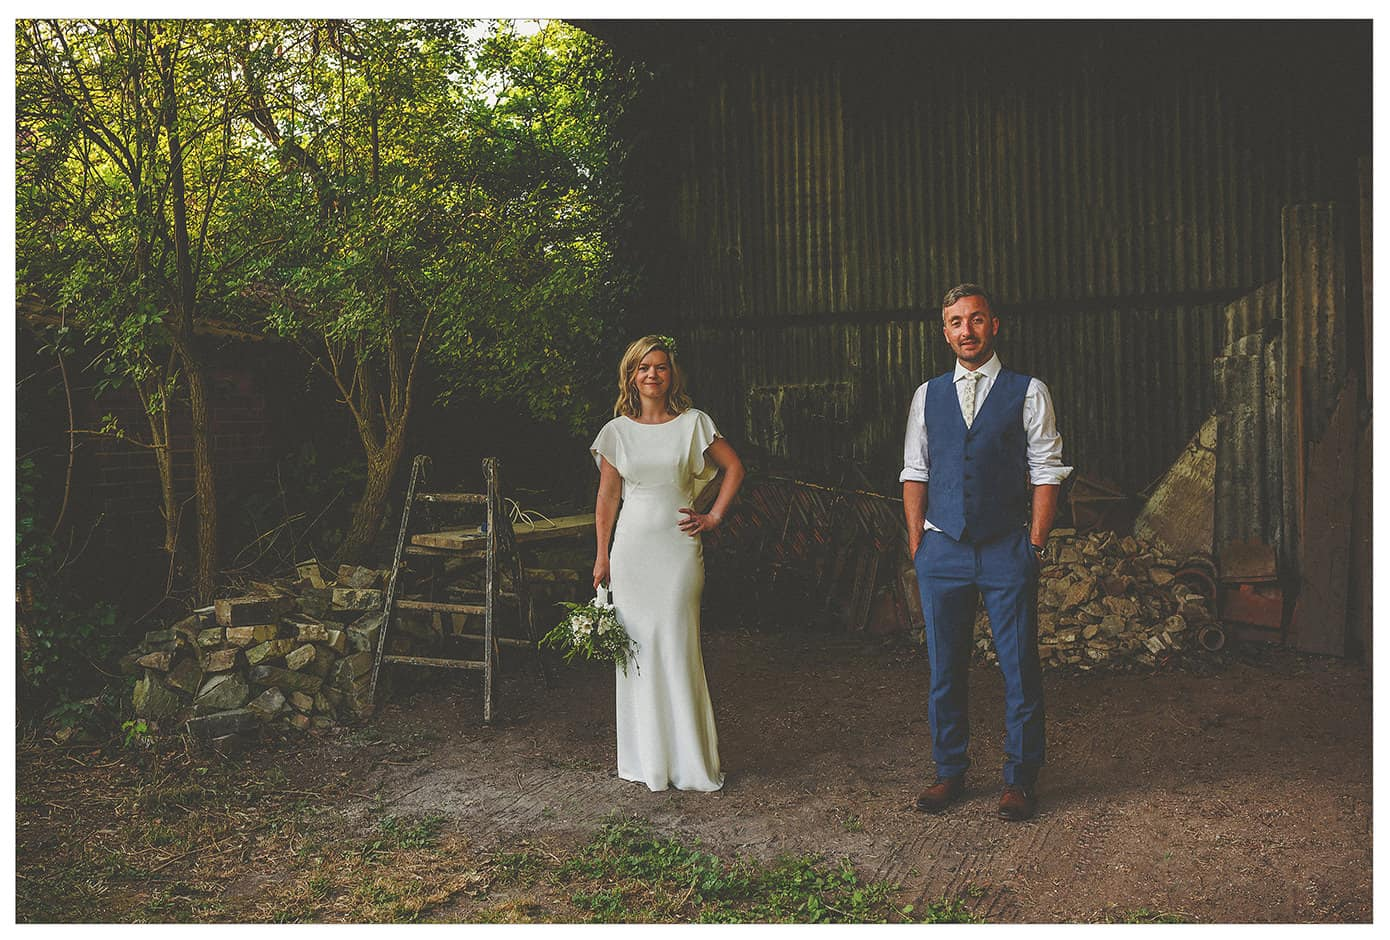 A bride and groom stand next to each other in a barn